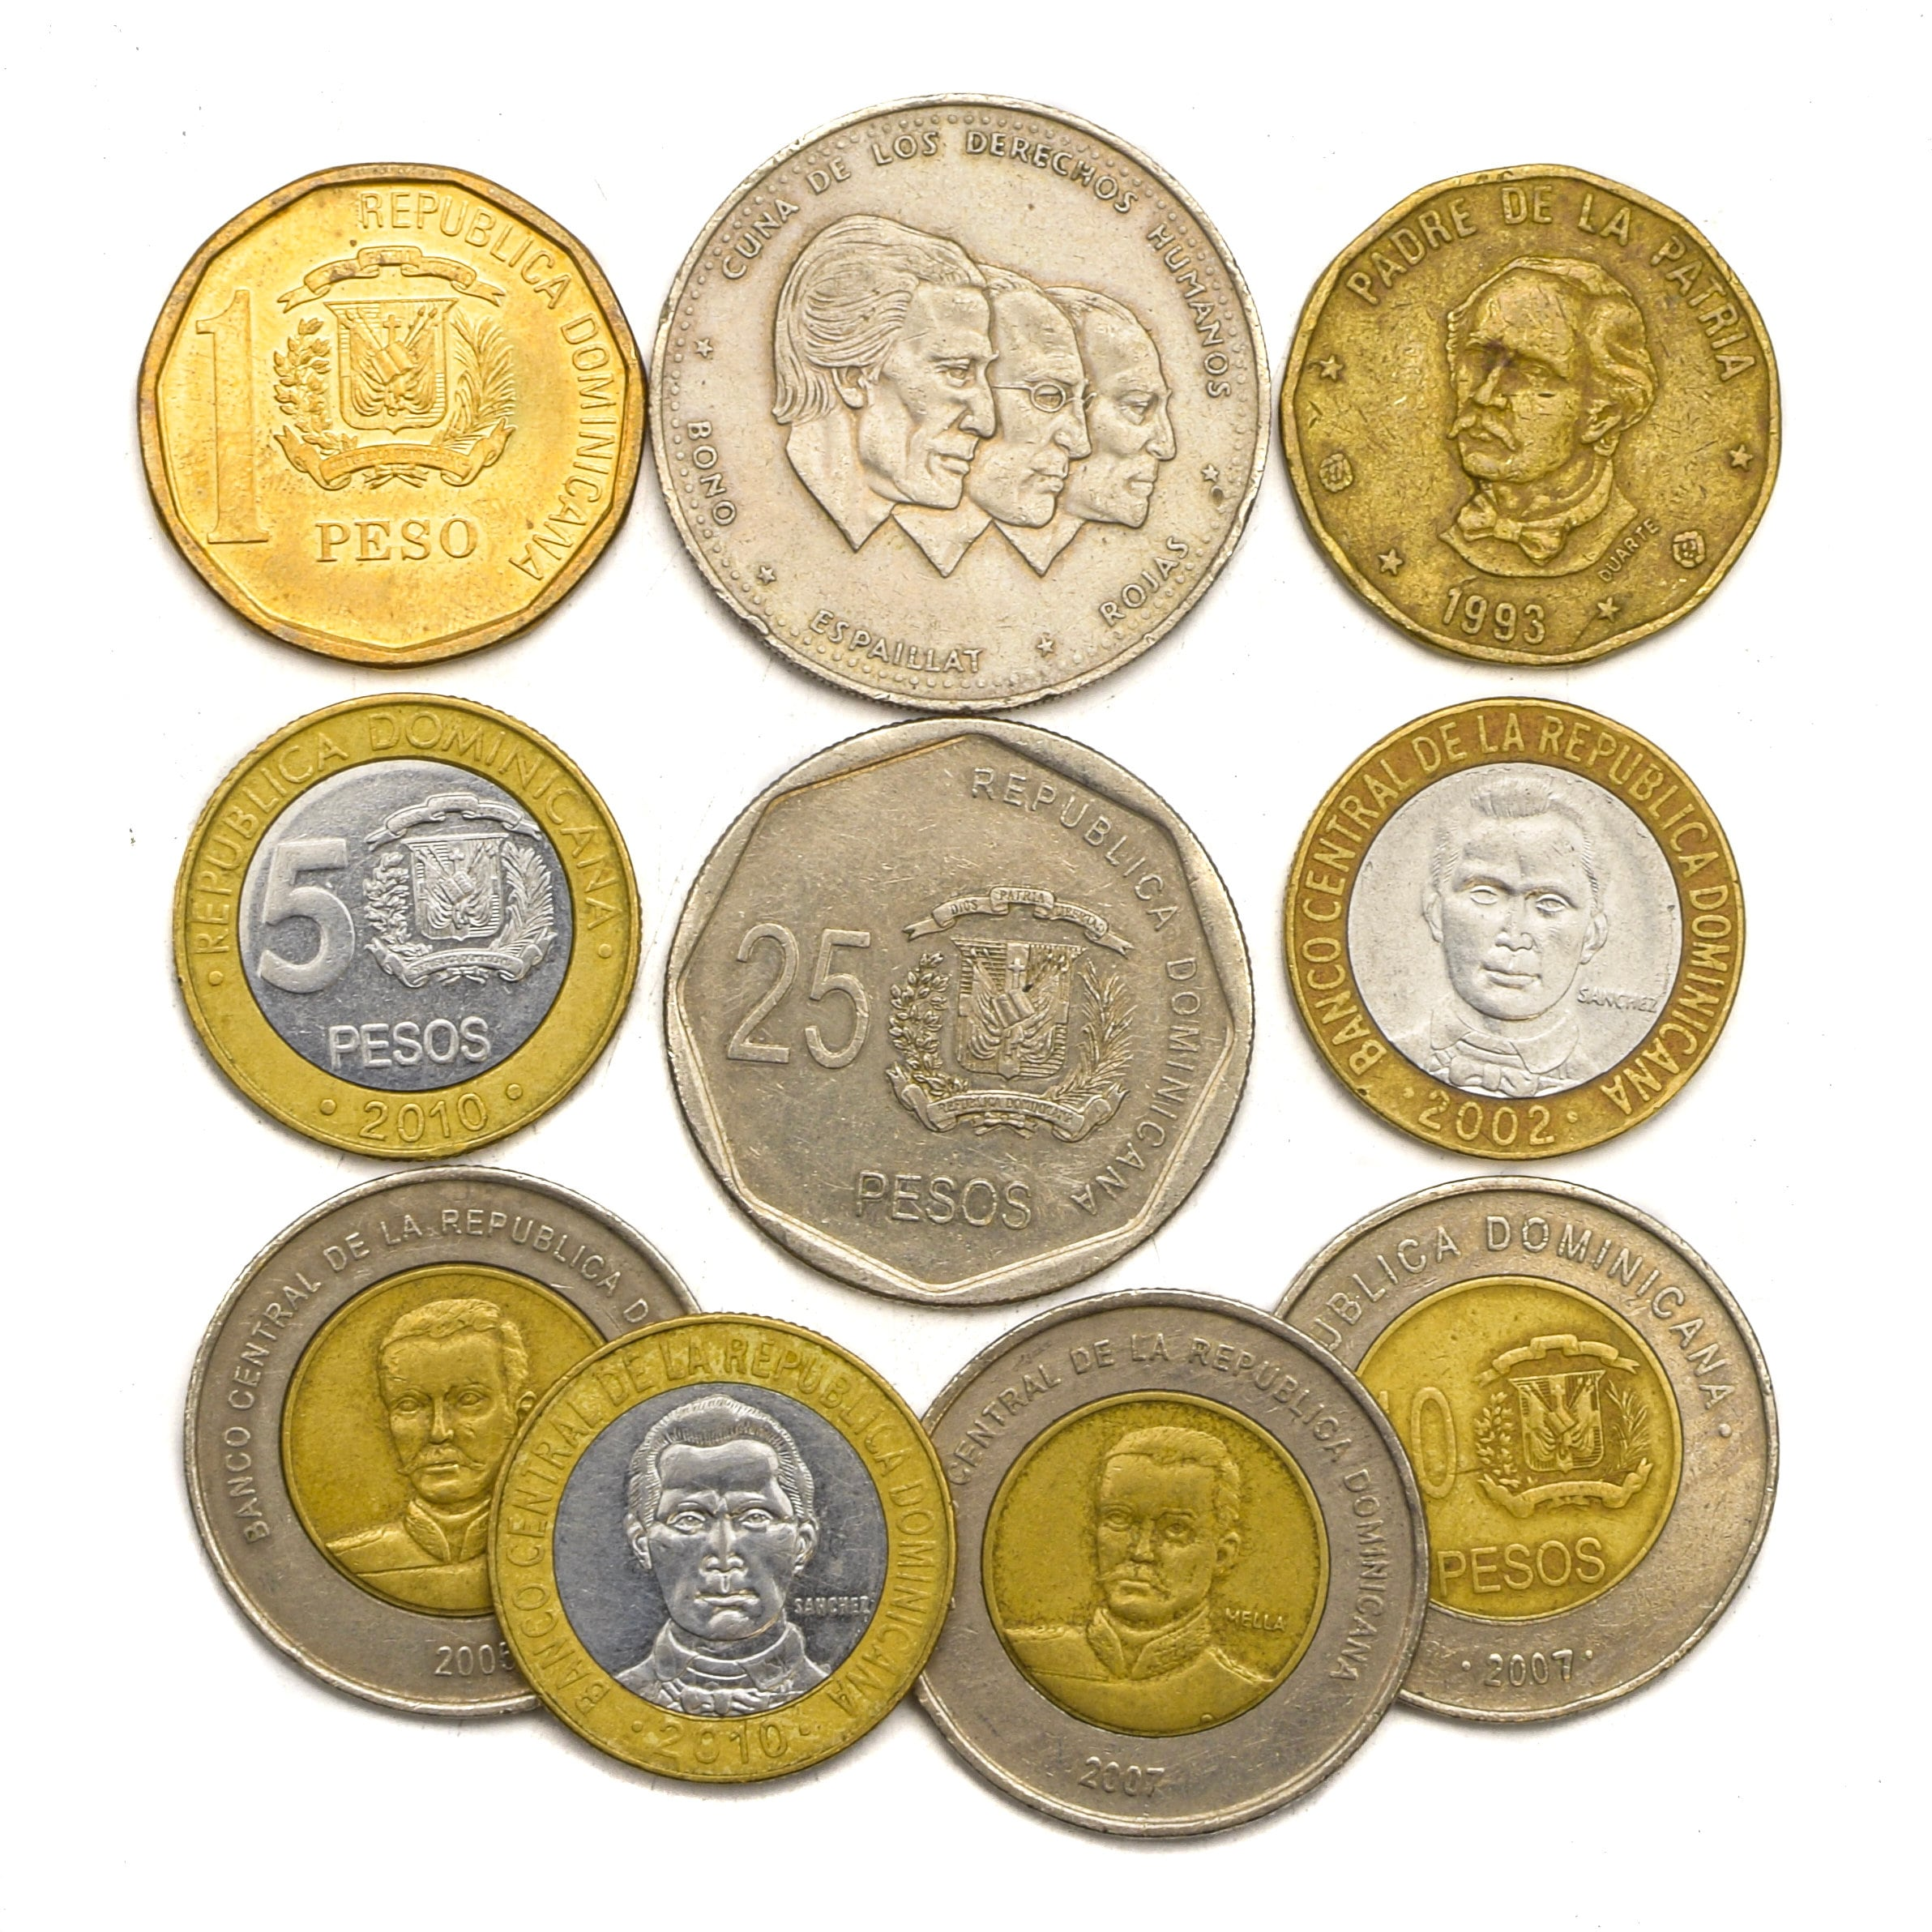 Lot of 10 Dominican Republic Coins from Caribbean island of Hispaniola:  Peso, Pesos  Mixed old collectible coins